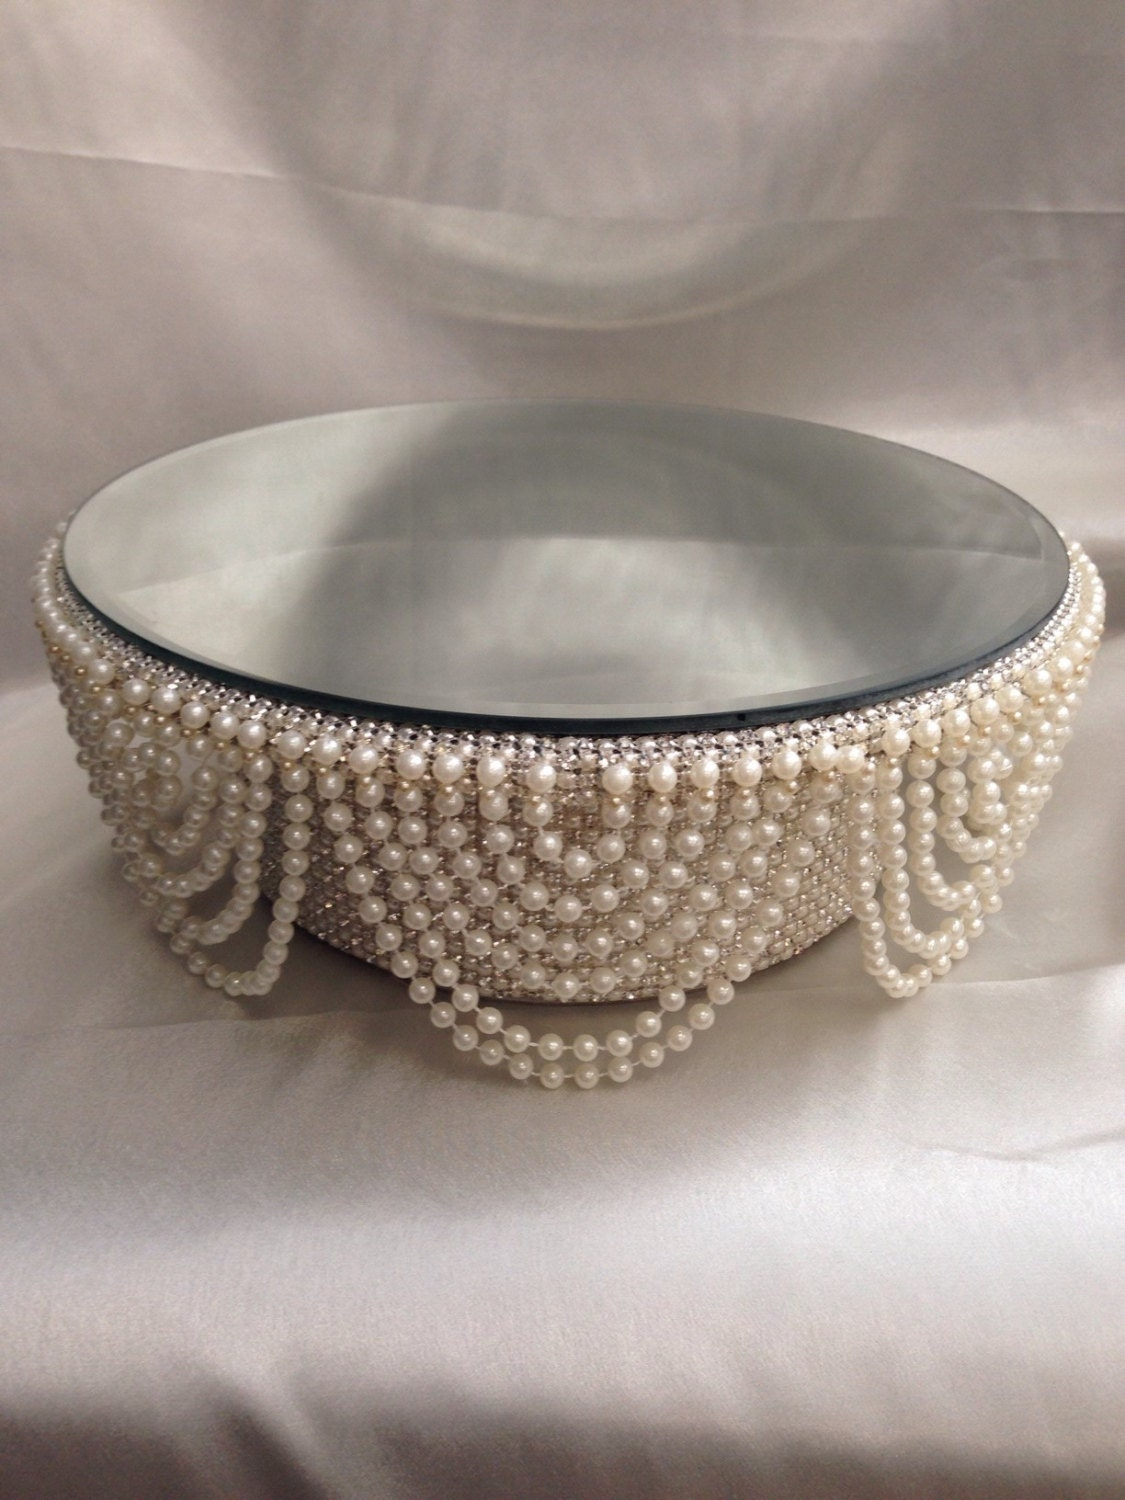 Pearl and crystals Drape design wedding cake stand round